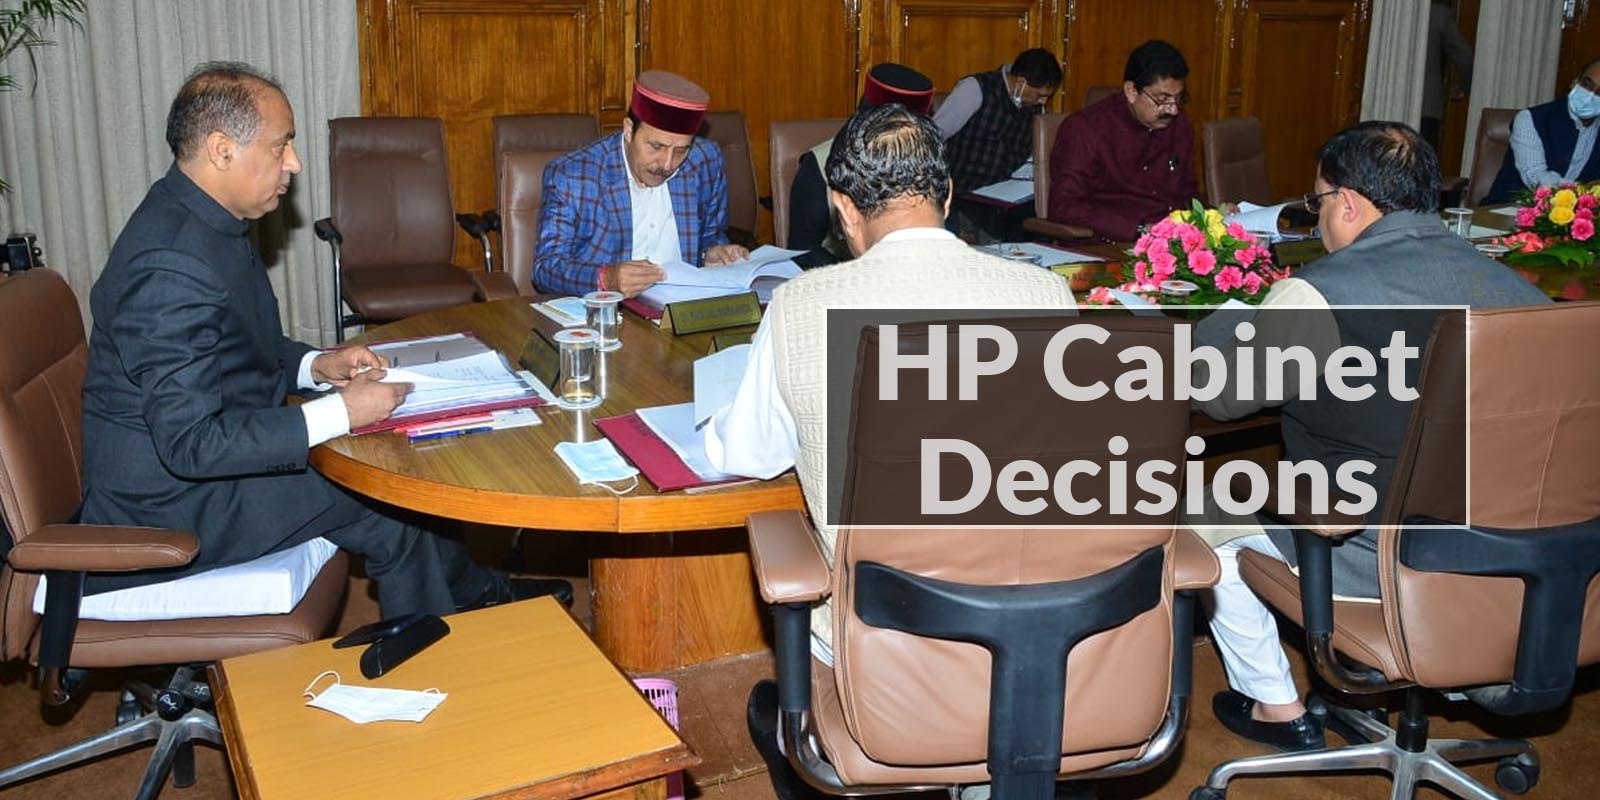 HP Cabinet Decisions september 24, 2021